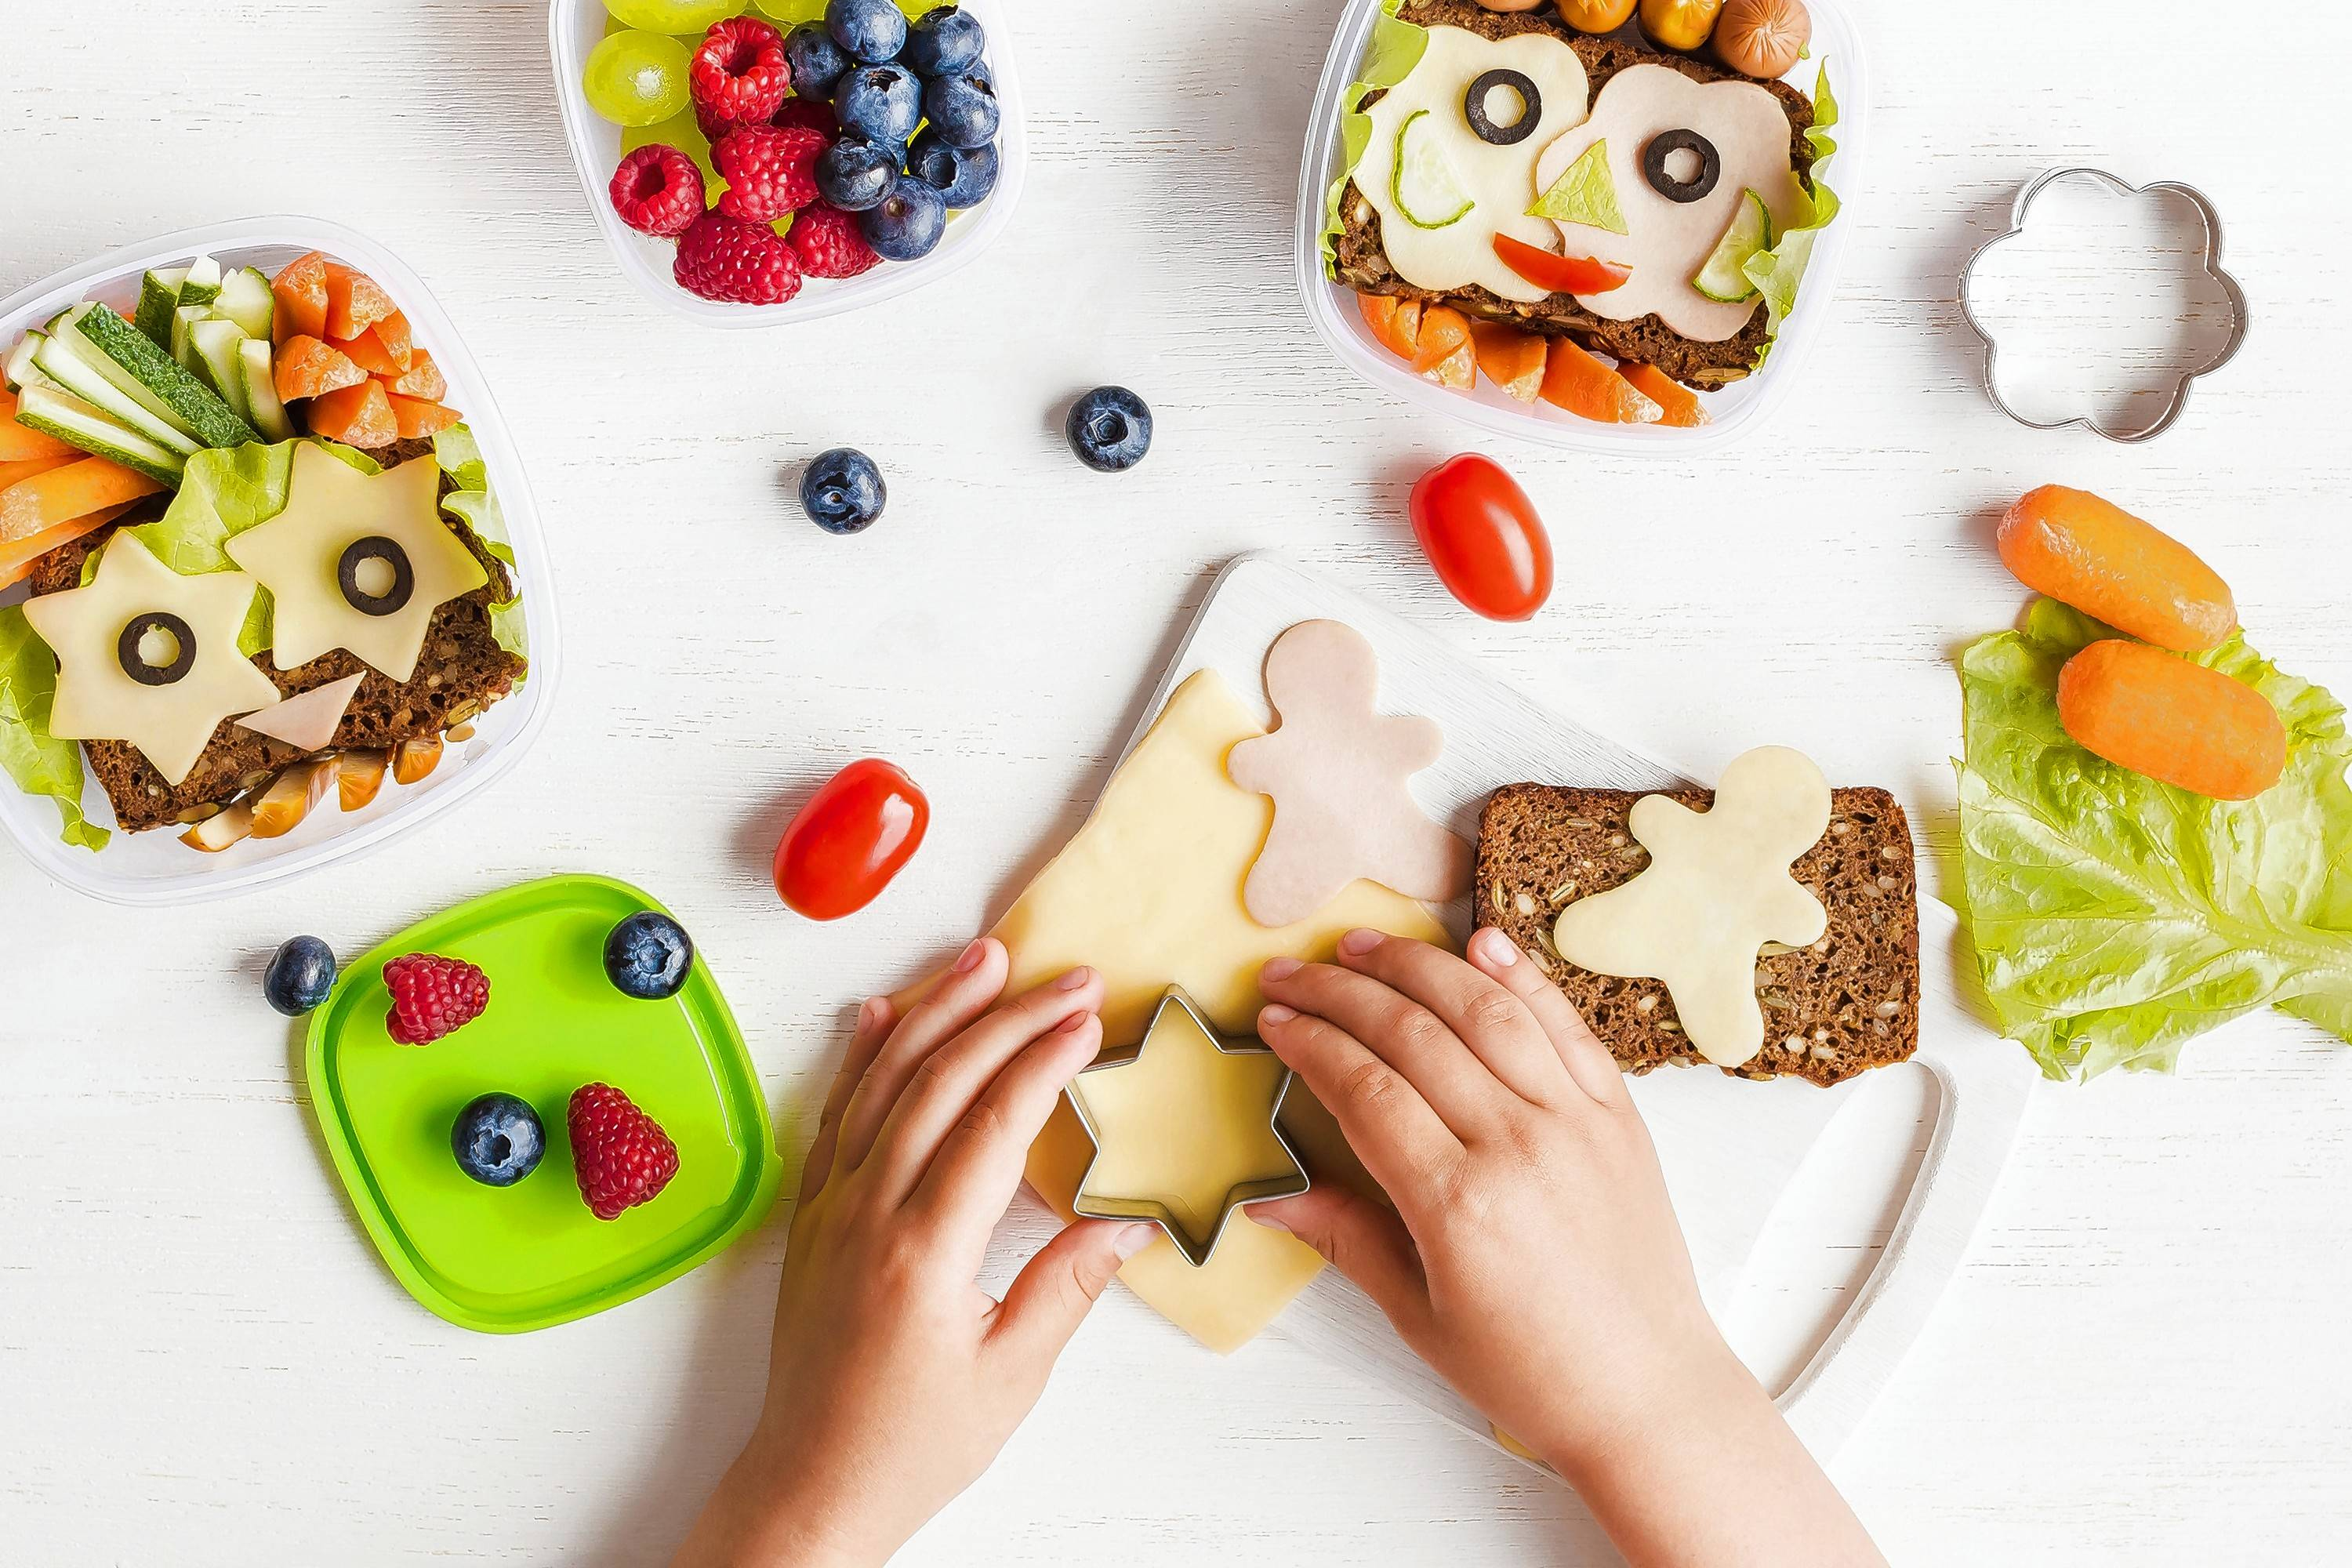 Cutting healthy food into fun shapes is one way to entice kids to eat their lunch.